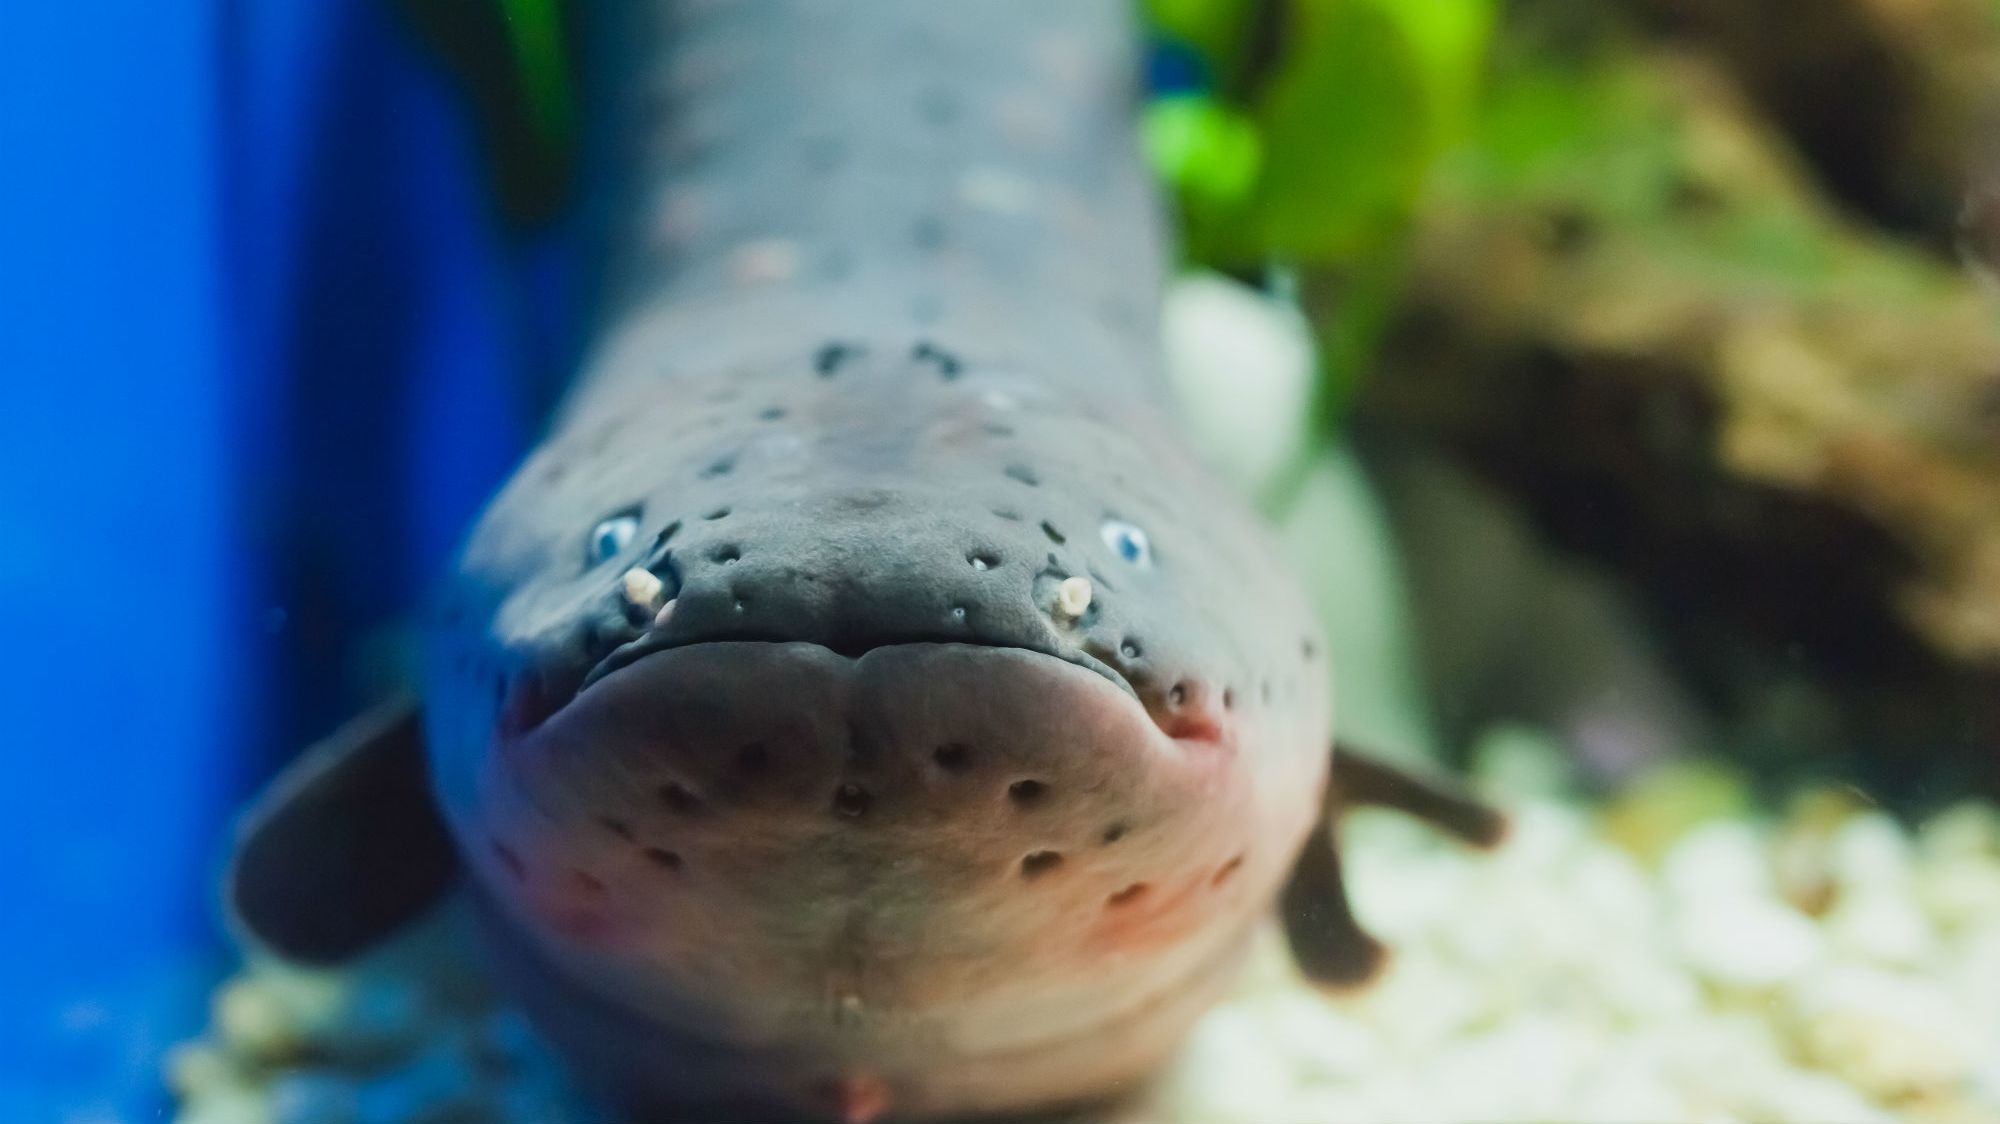 Shocker: This Electric Eel Delivers More Voltage Than Any Creature on Earth